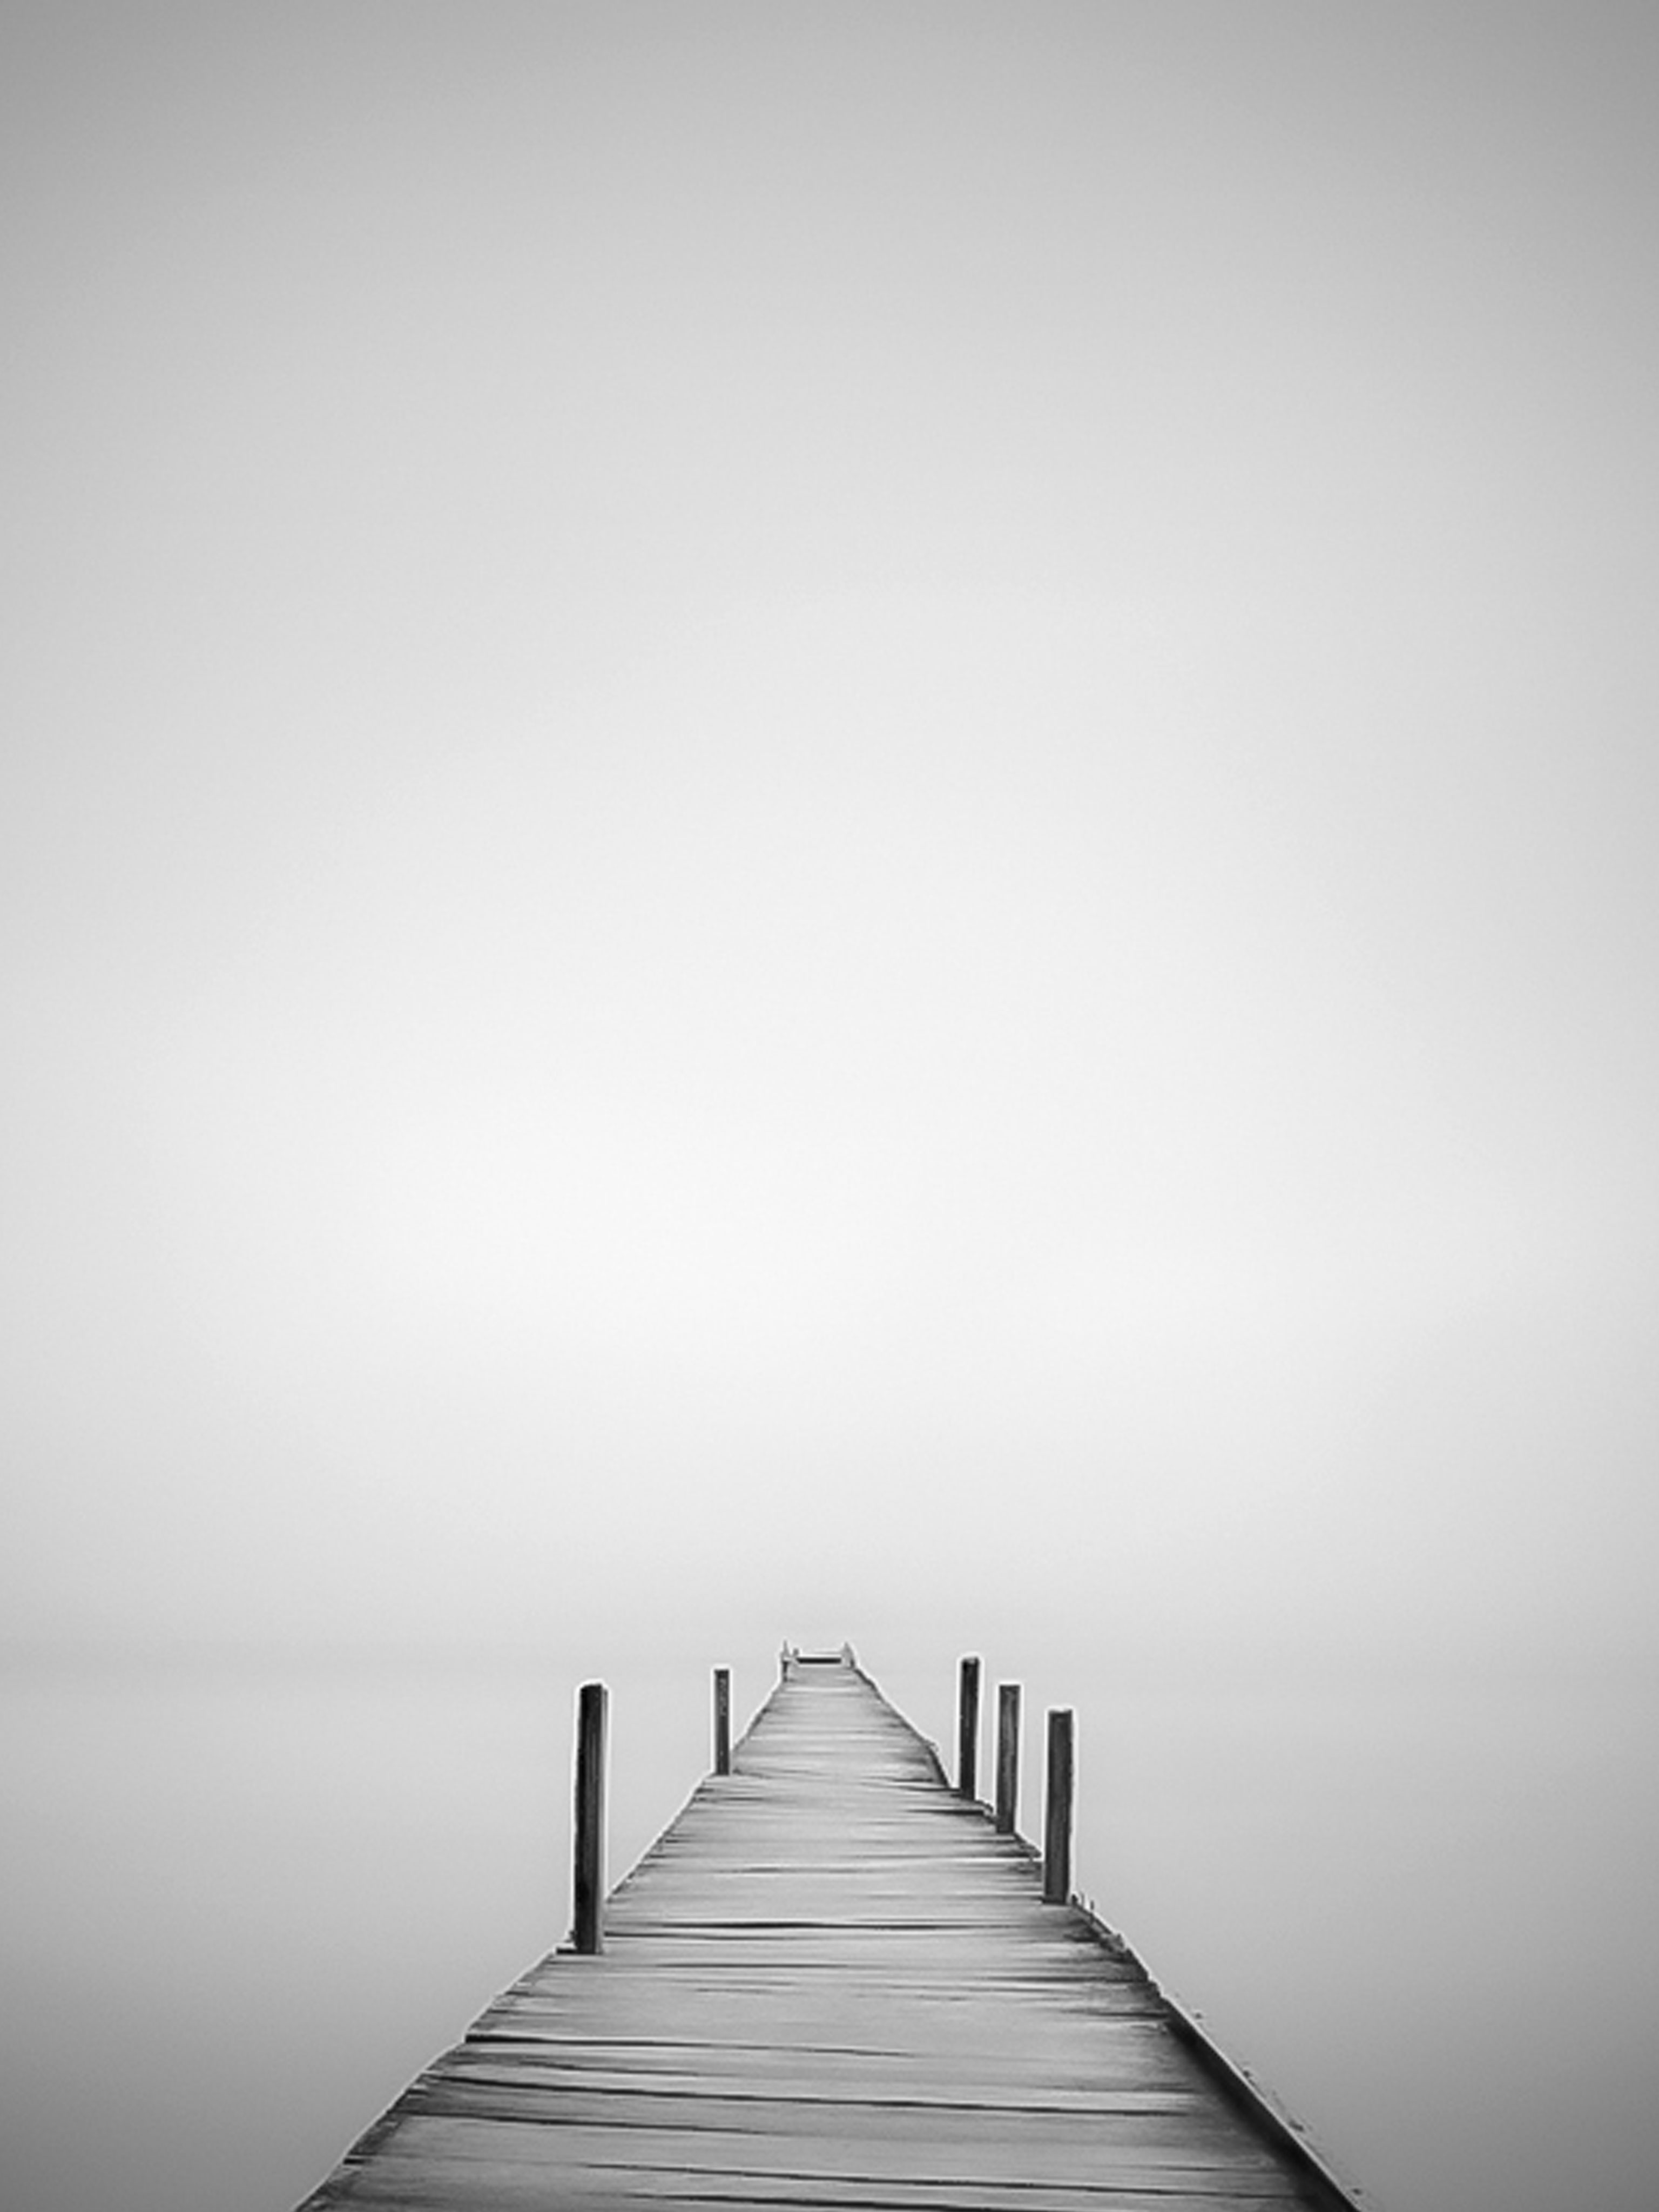 Pier in mist mobile wallpaper miniwallist download for ios voltagebd Images